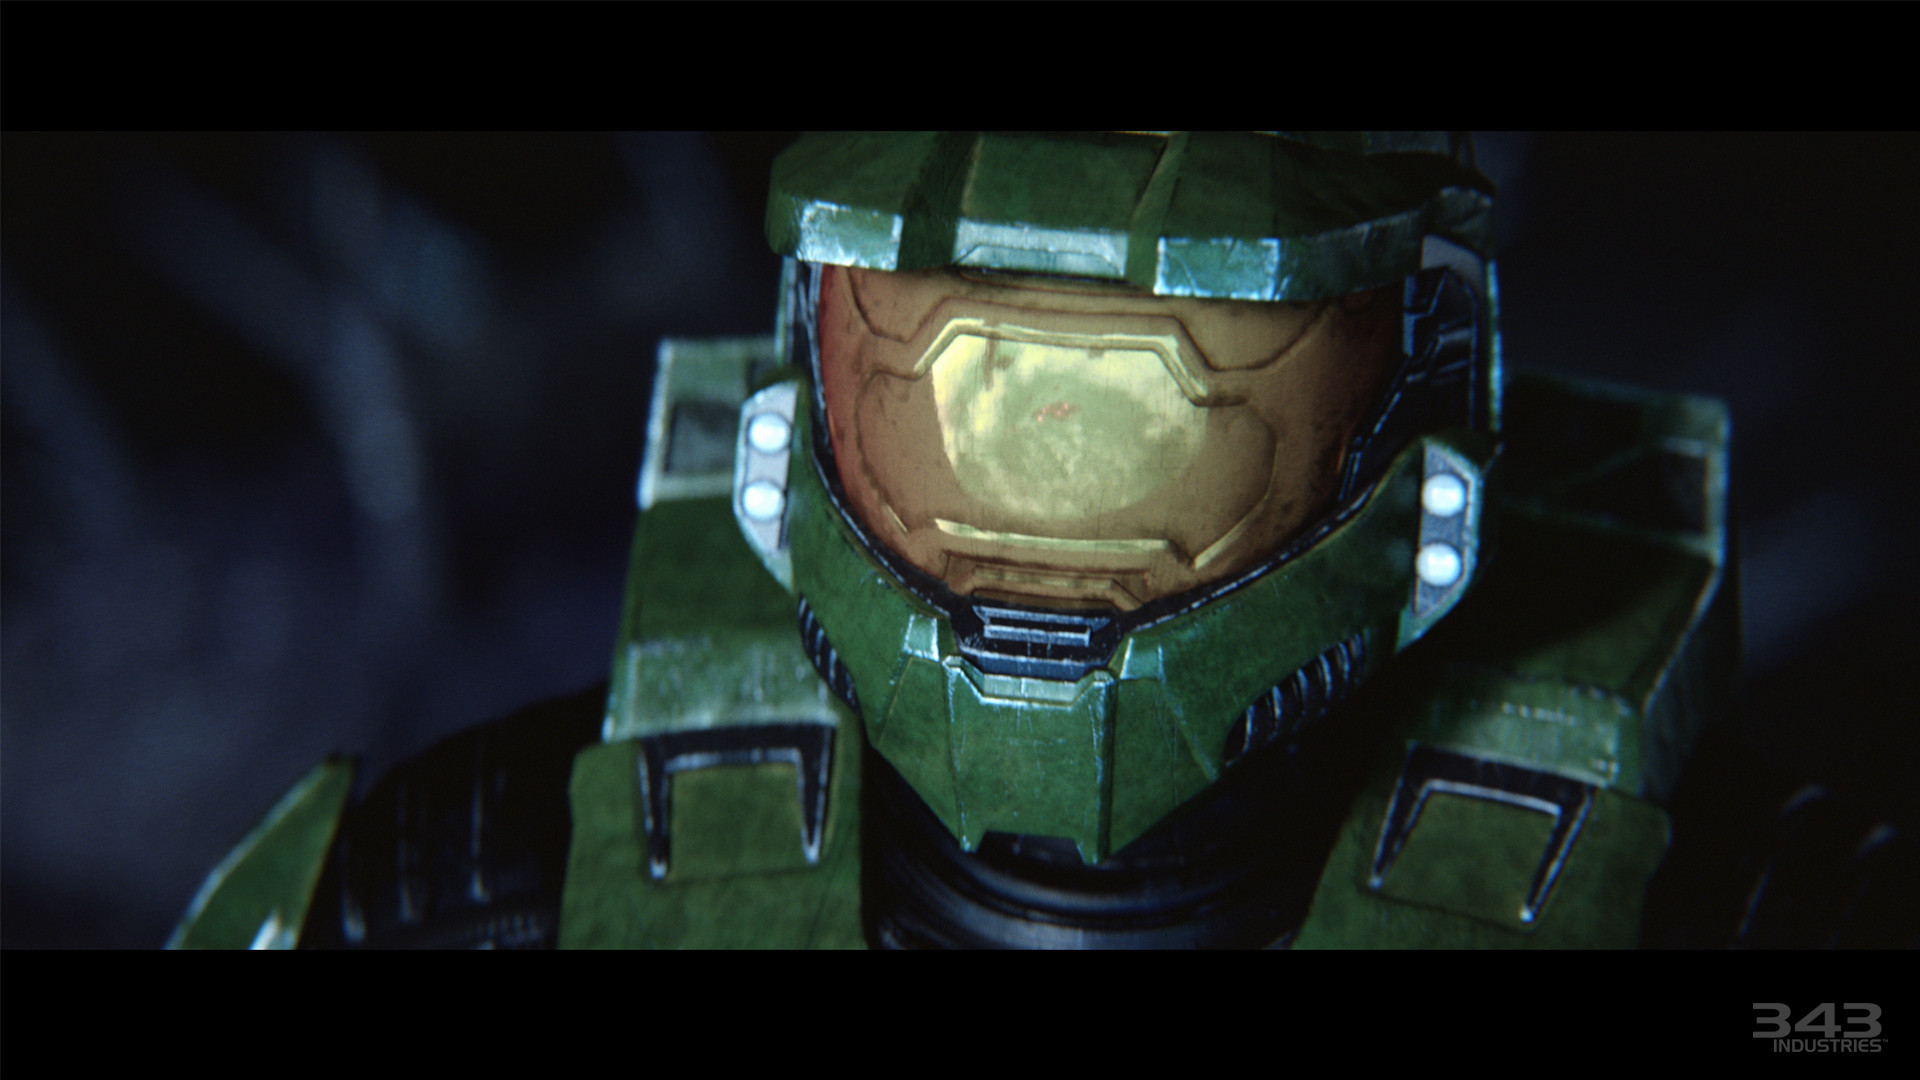 … Evolved Anniversary, Halo 3, Halo 4, Halo: Nightfall, and access to the  Halo 5: Guardians Multiplayer Beta. This is the definitive Halo experience,  …